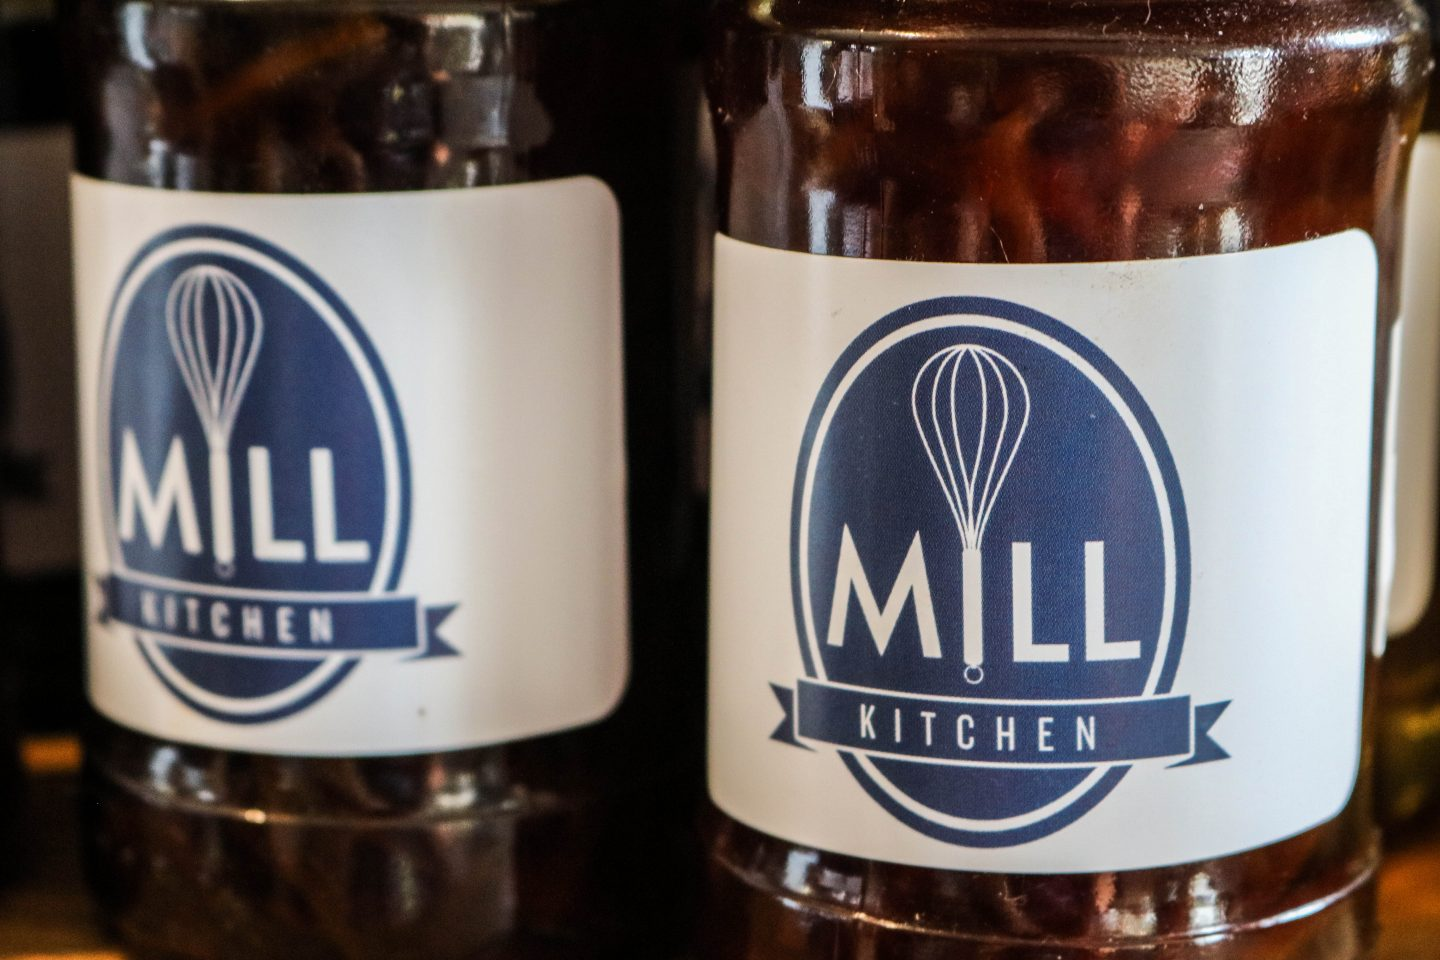 Mill Kitchen Farsley, the best breakfast in Yorkshire, Review on the Lifestyle Enthusiast _ Shelves